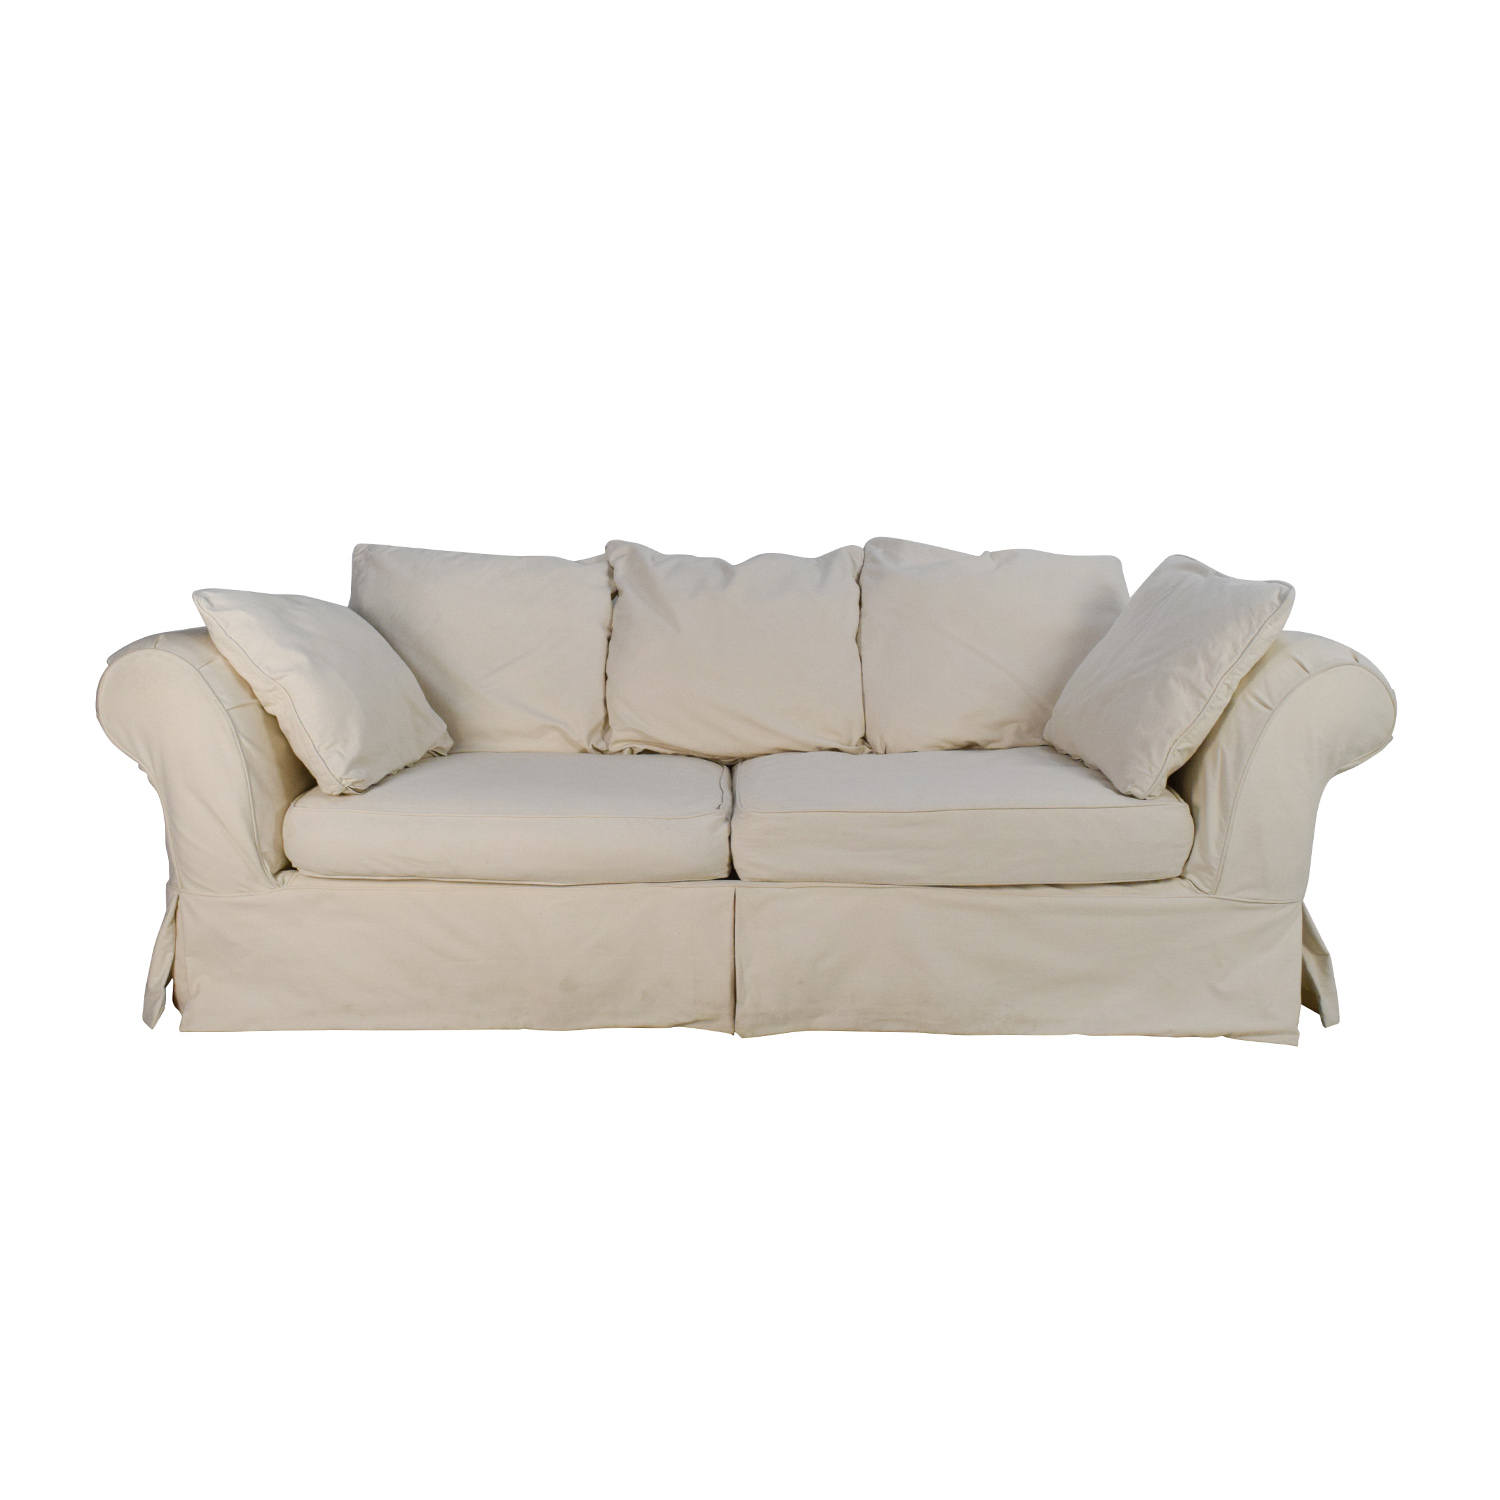 Jennifer Convertibles Linda Slipcovered Sofa Jennifer Convertibles